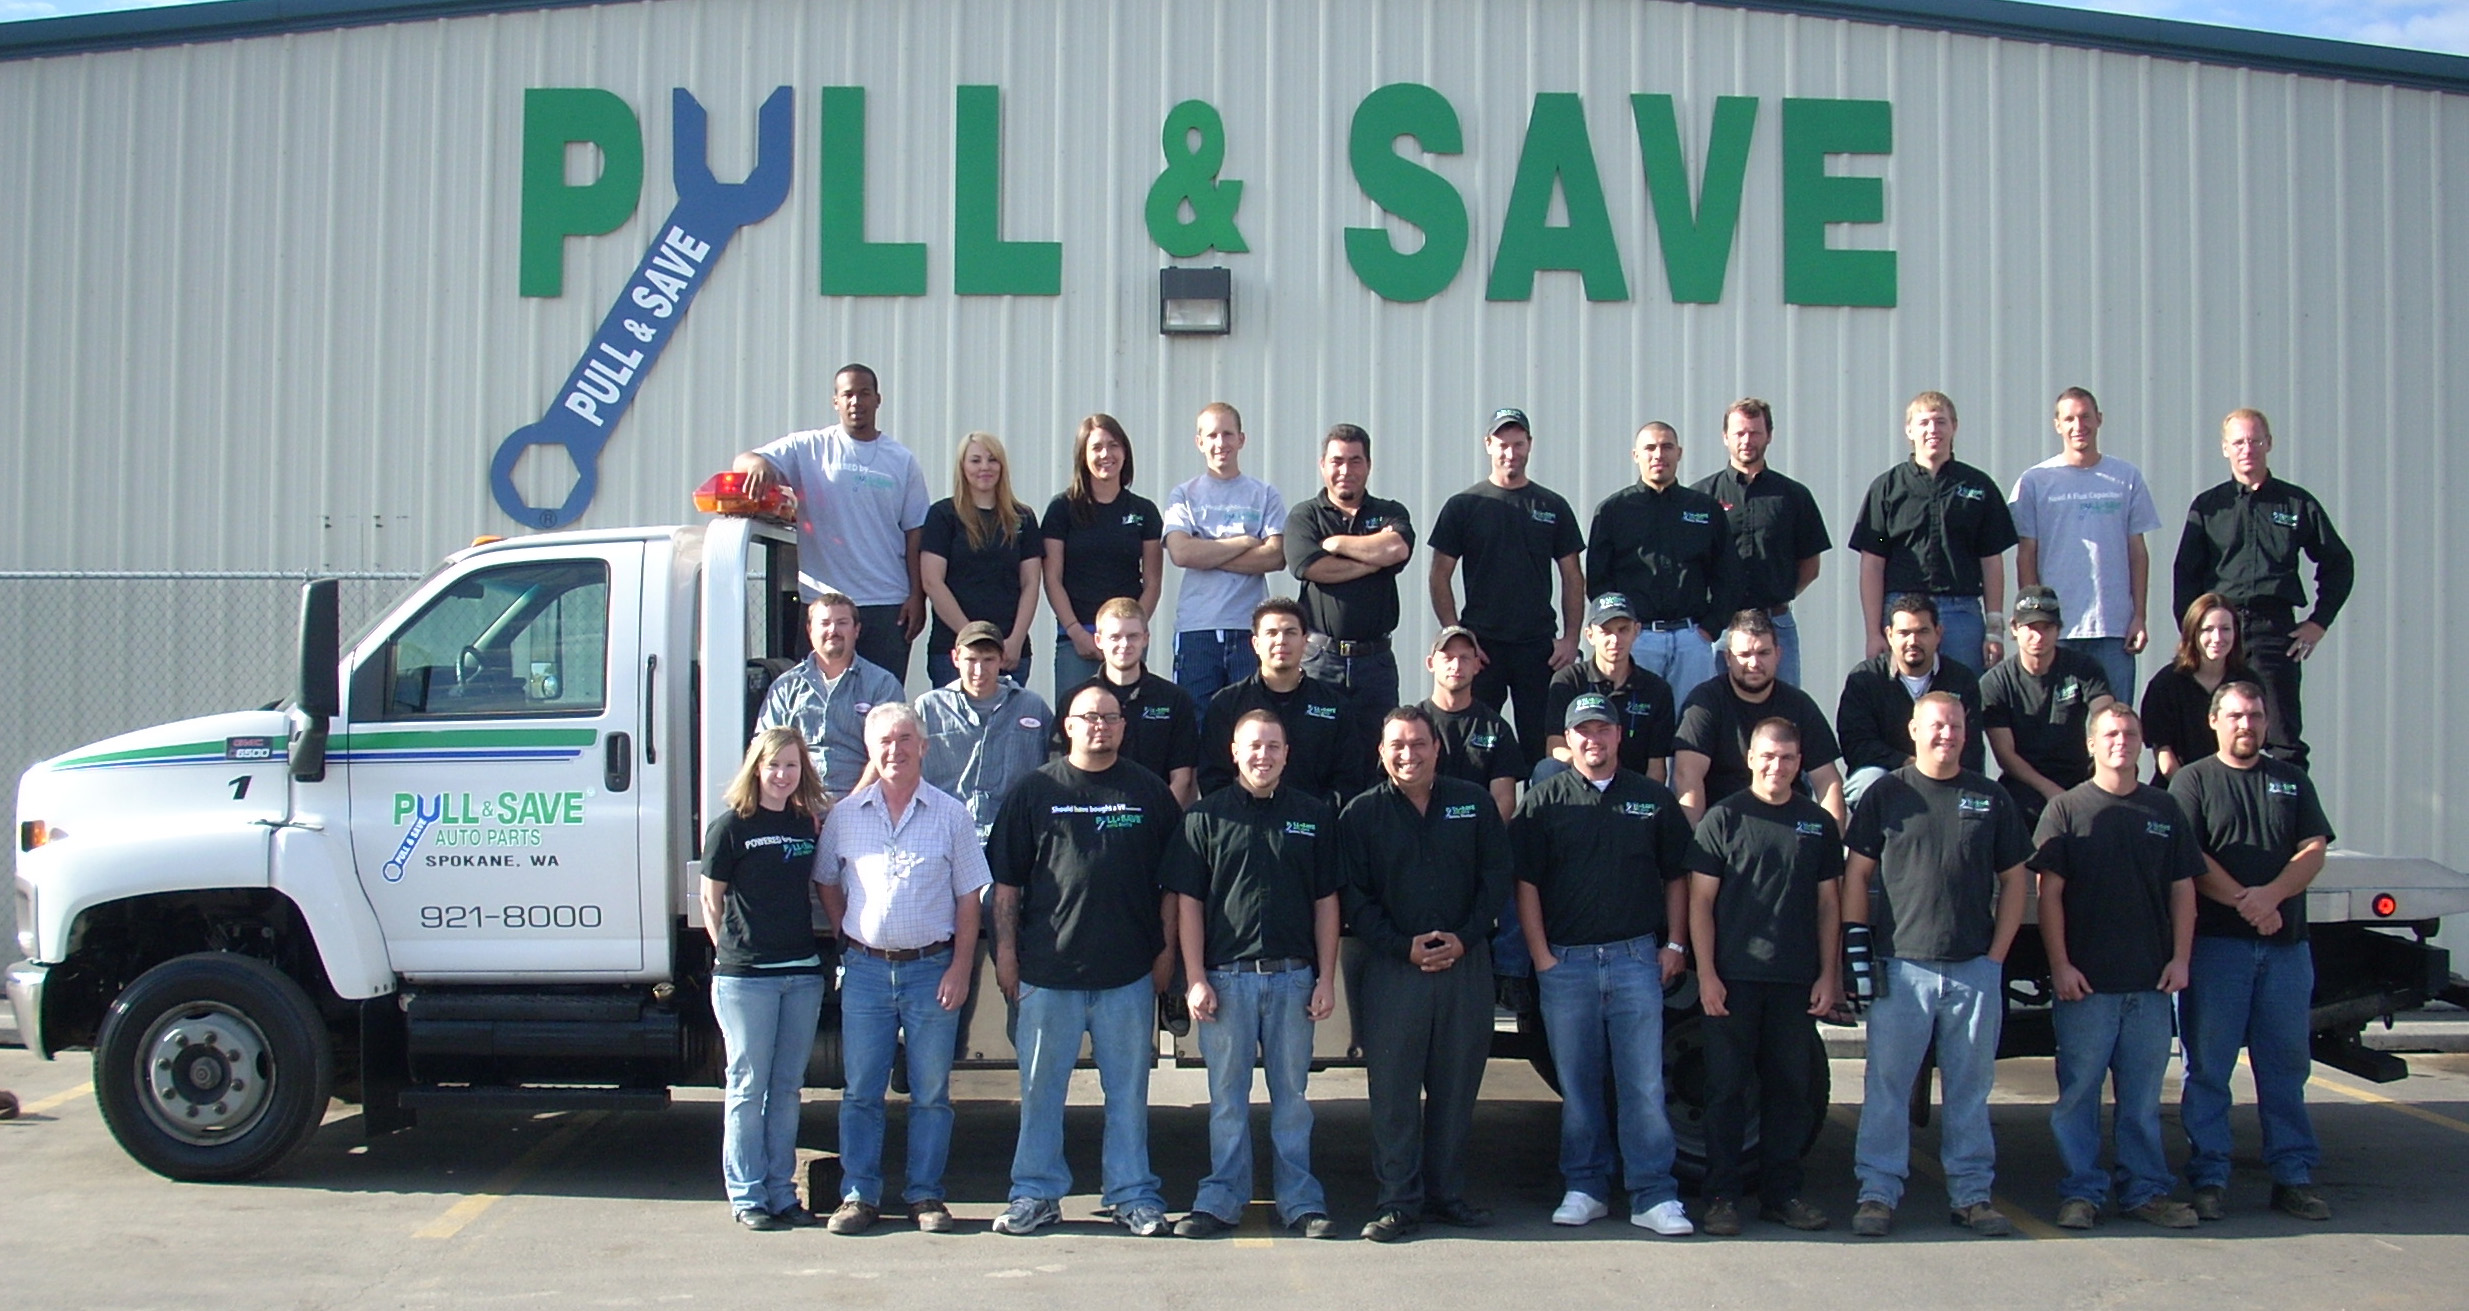 pull and save auto parts http www pullandsave com home htm